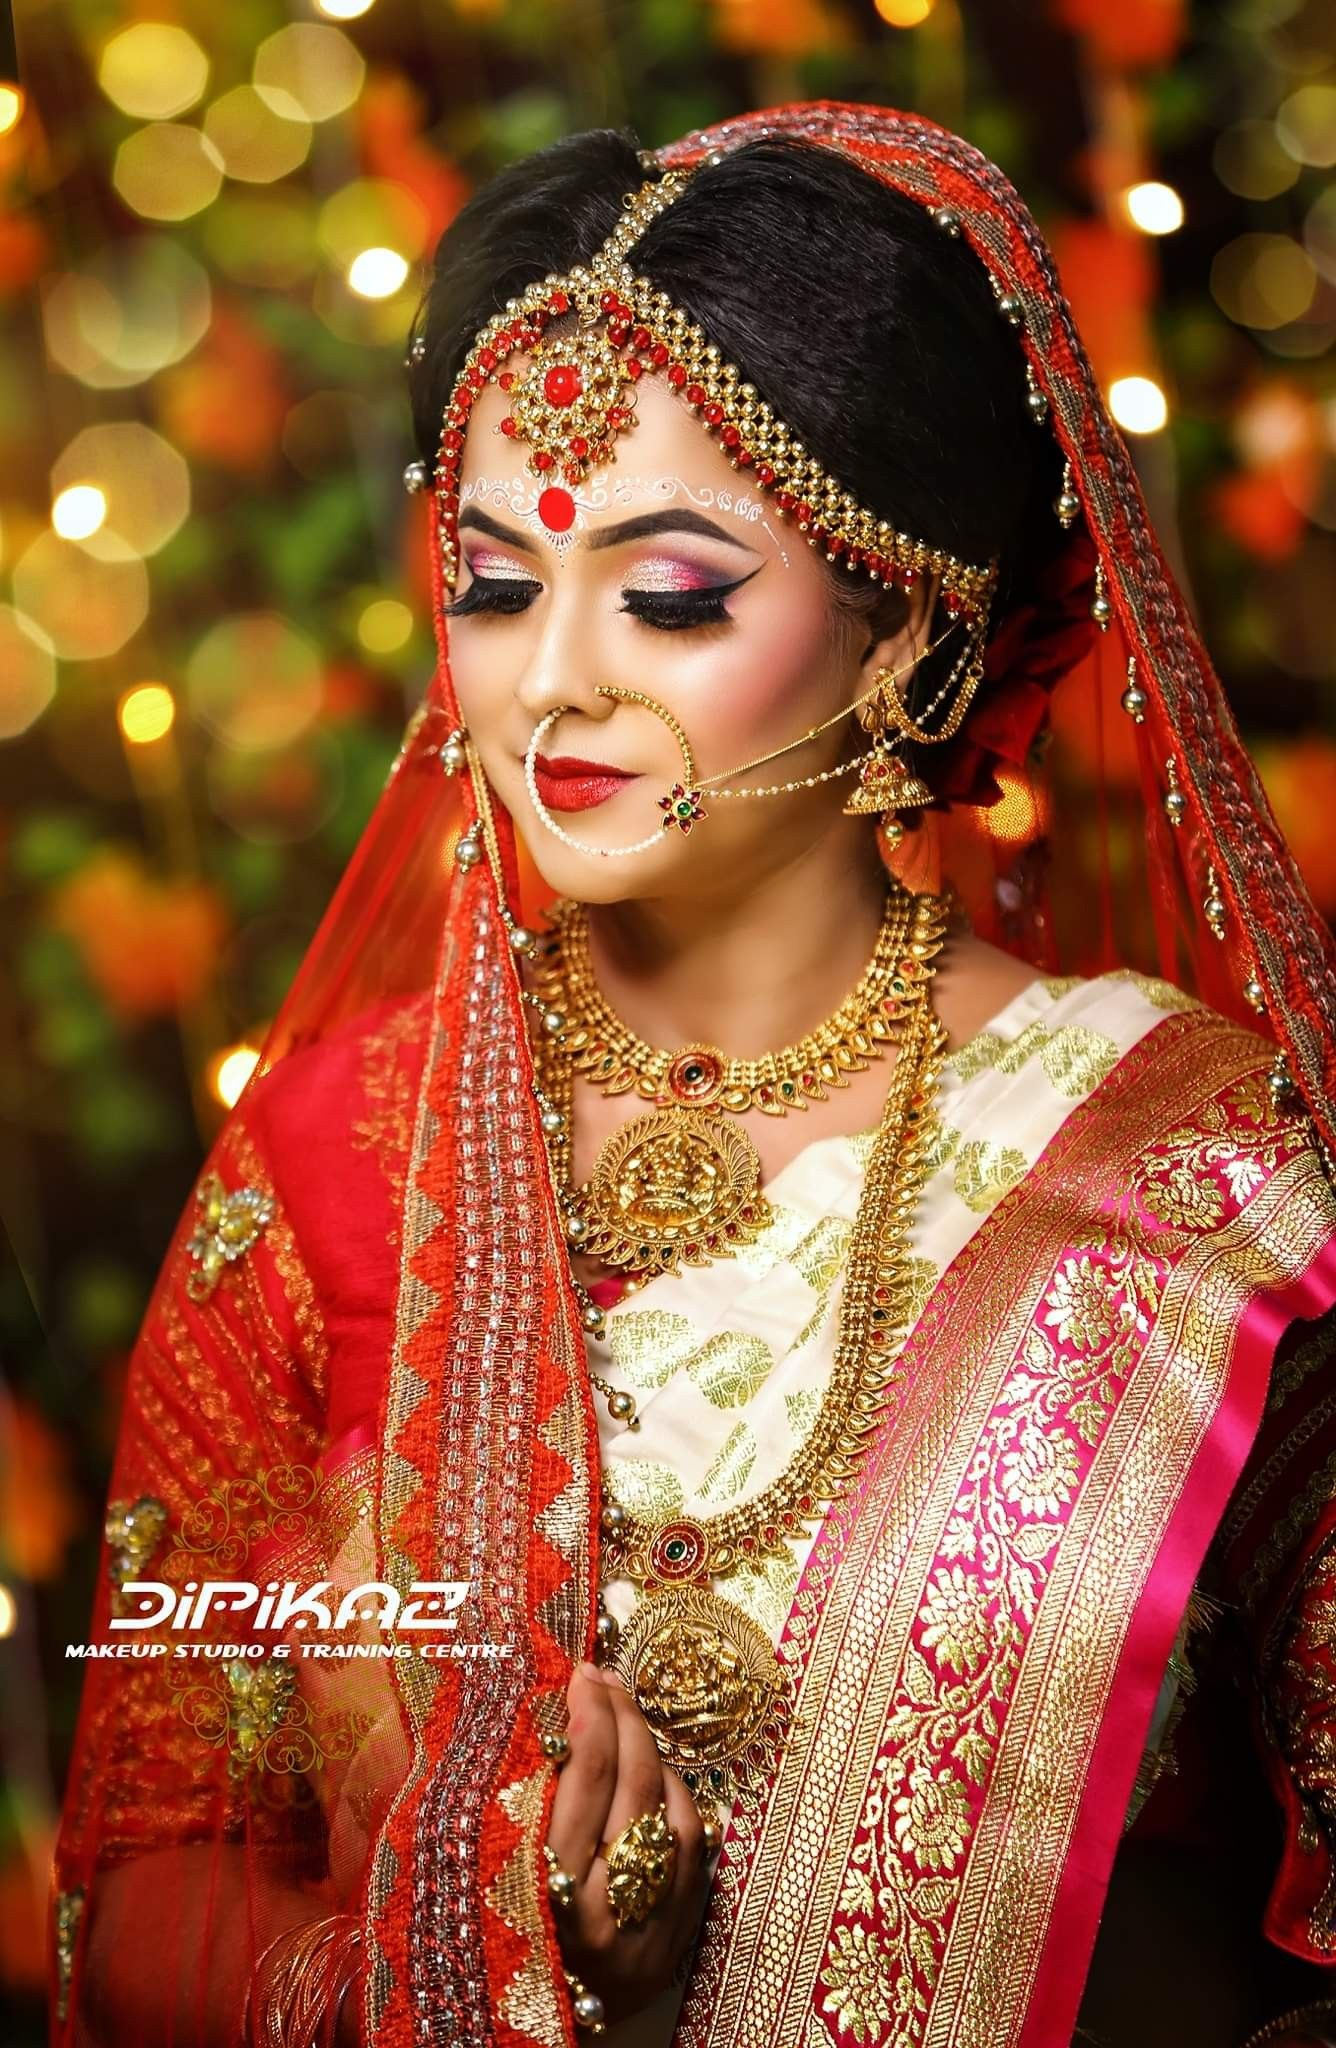 Pin By Geer Sin On Braidel Pakistani Bridal Makeup Indian Bride Makeup Indian Wedding Photography Poses